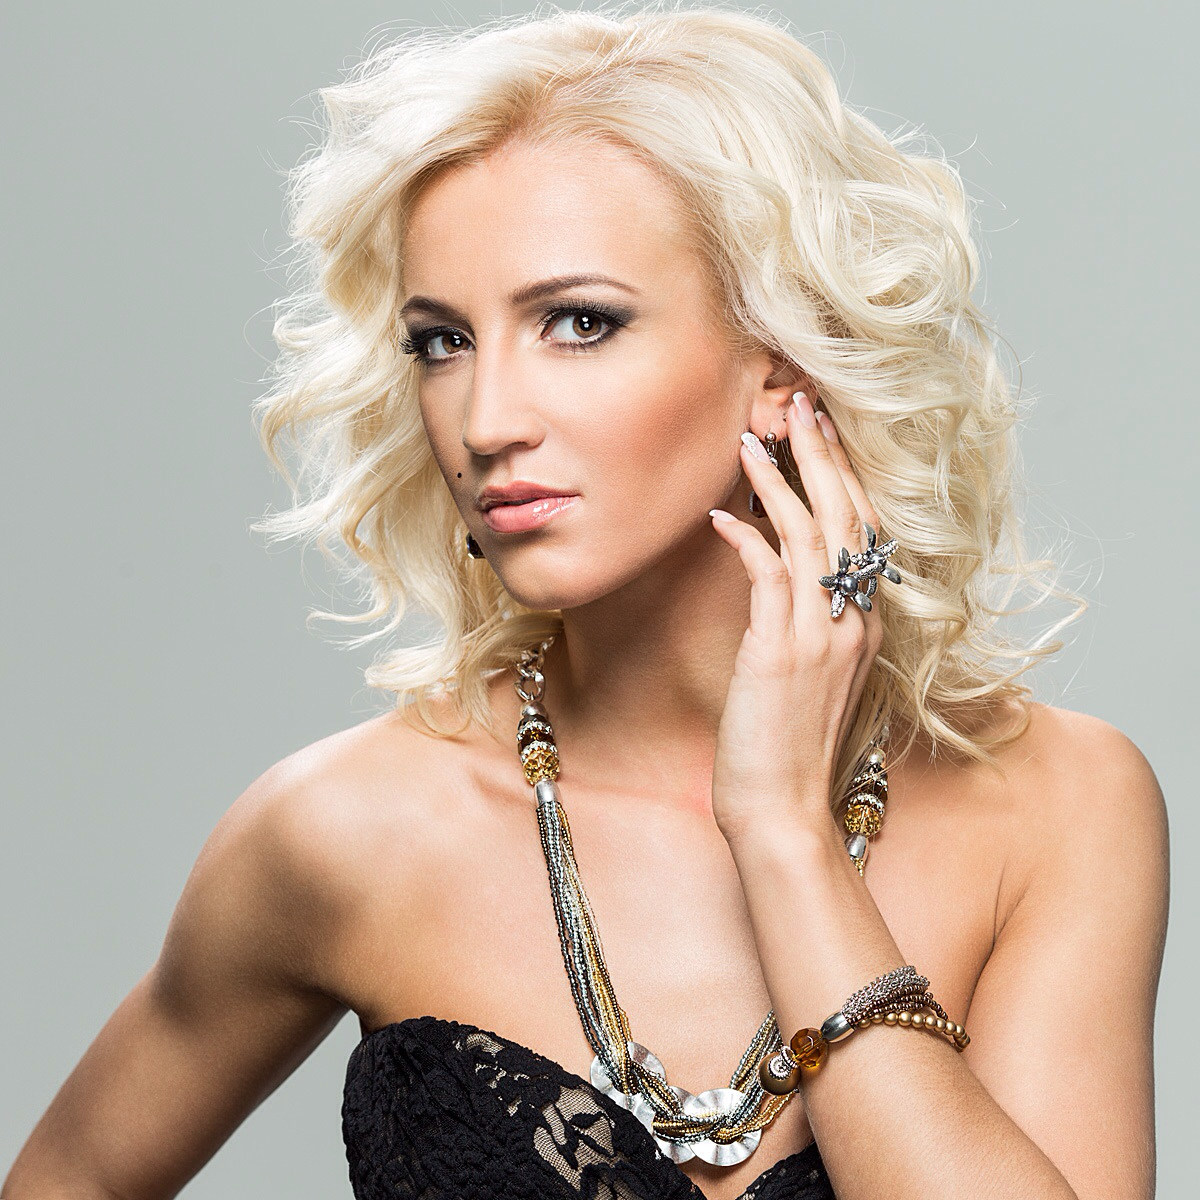 Olga Buzova changed the image after returning from the USA